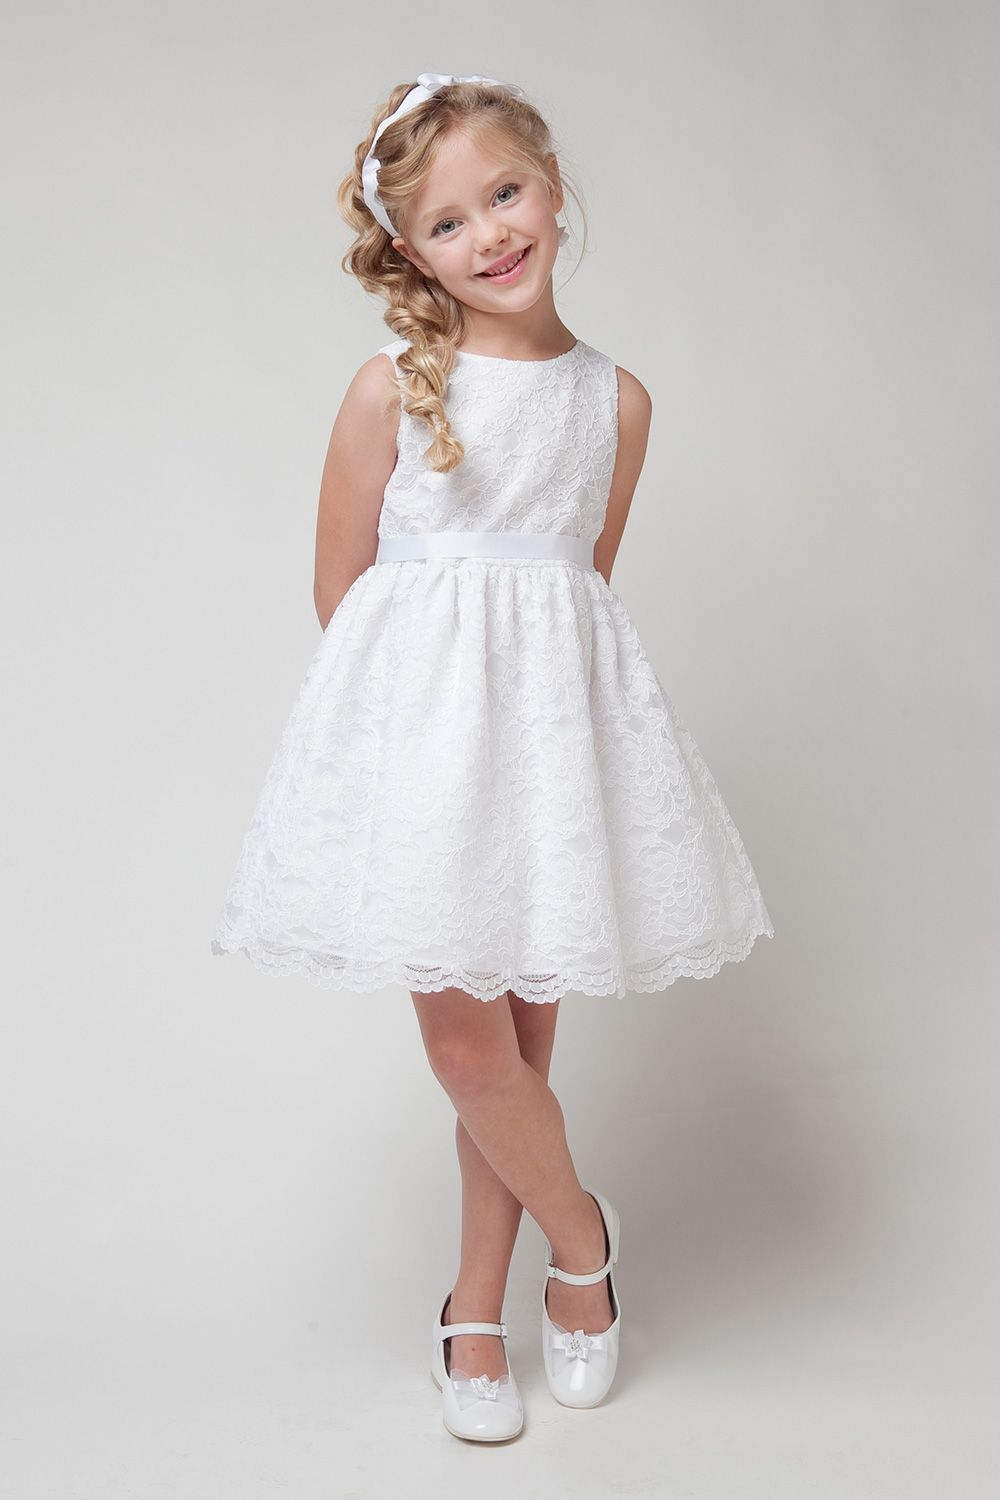 White Flower Girl Dresses | Crafty Things :) | Pinterest | Lace ...